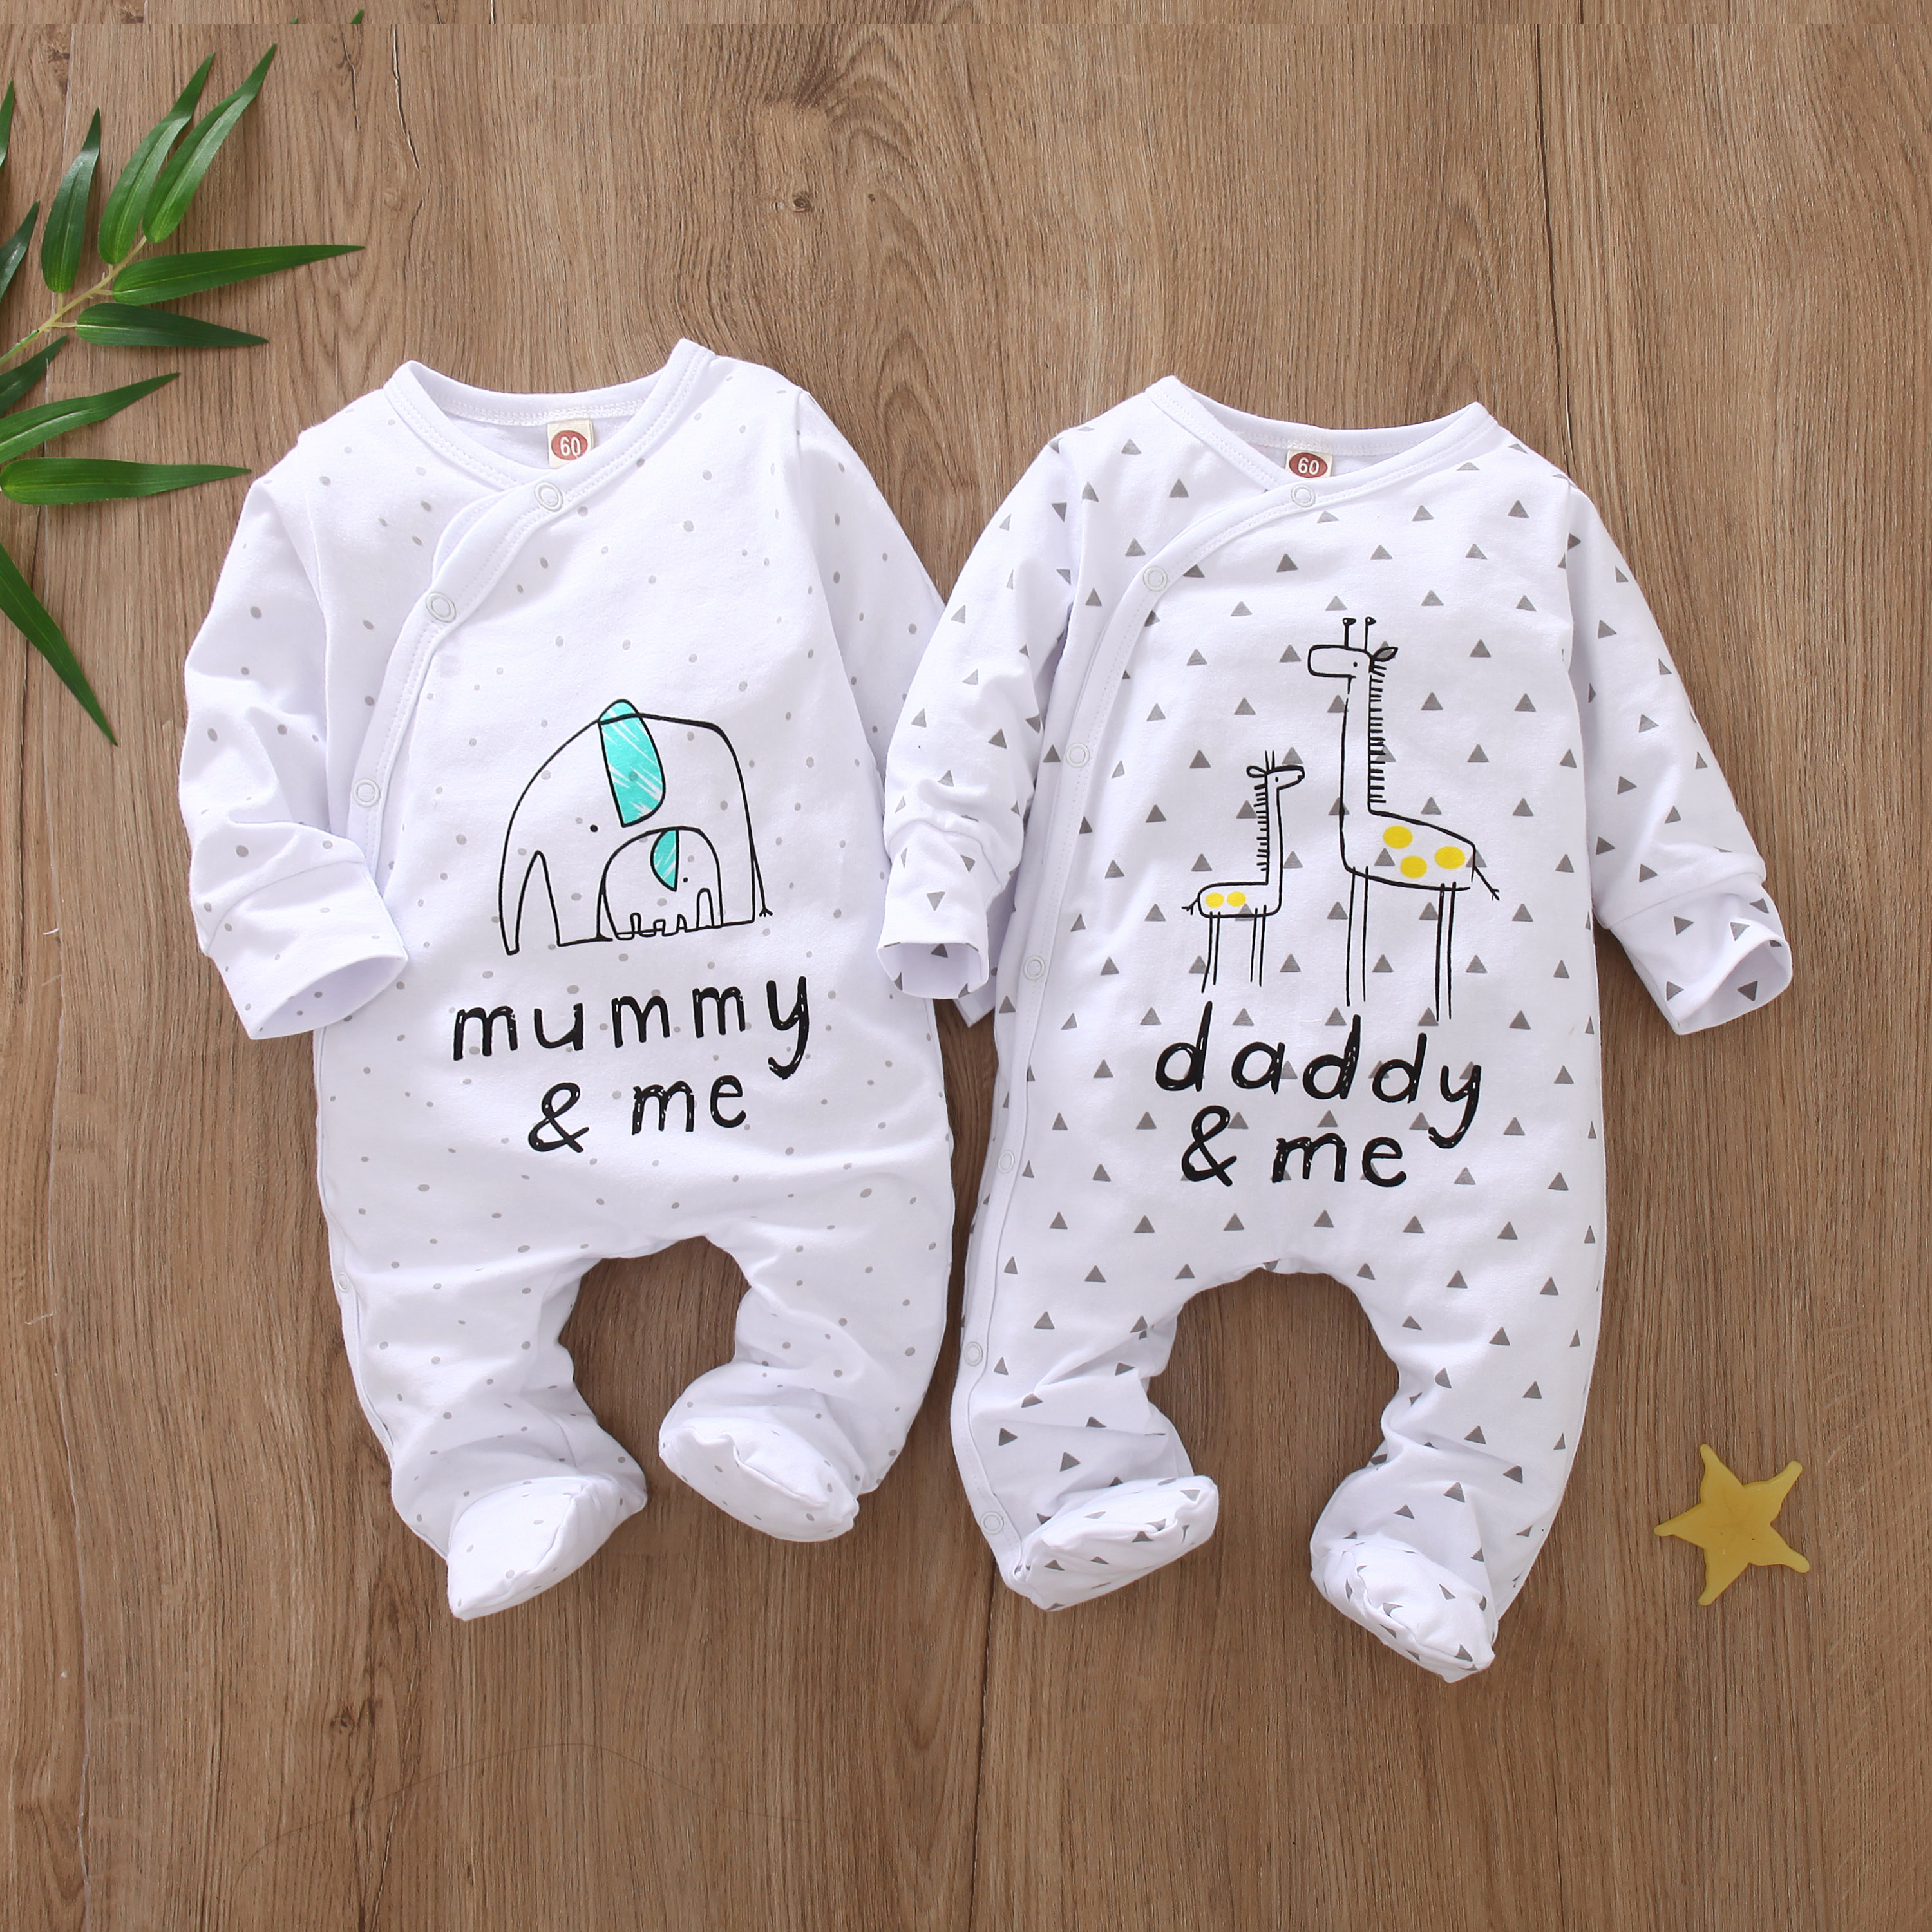 Baby Boys Girls Romper Cotton Long Sleeve Letter Daddy Mummy & Me Letter Jumpsuit Newborn Clothes Autumn Baby Clothing Outfits